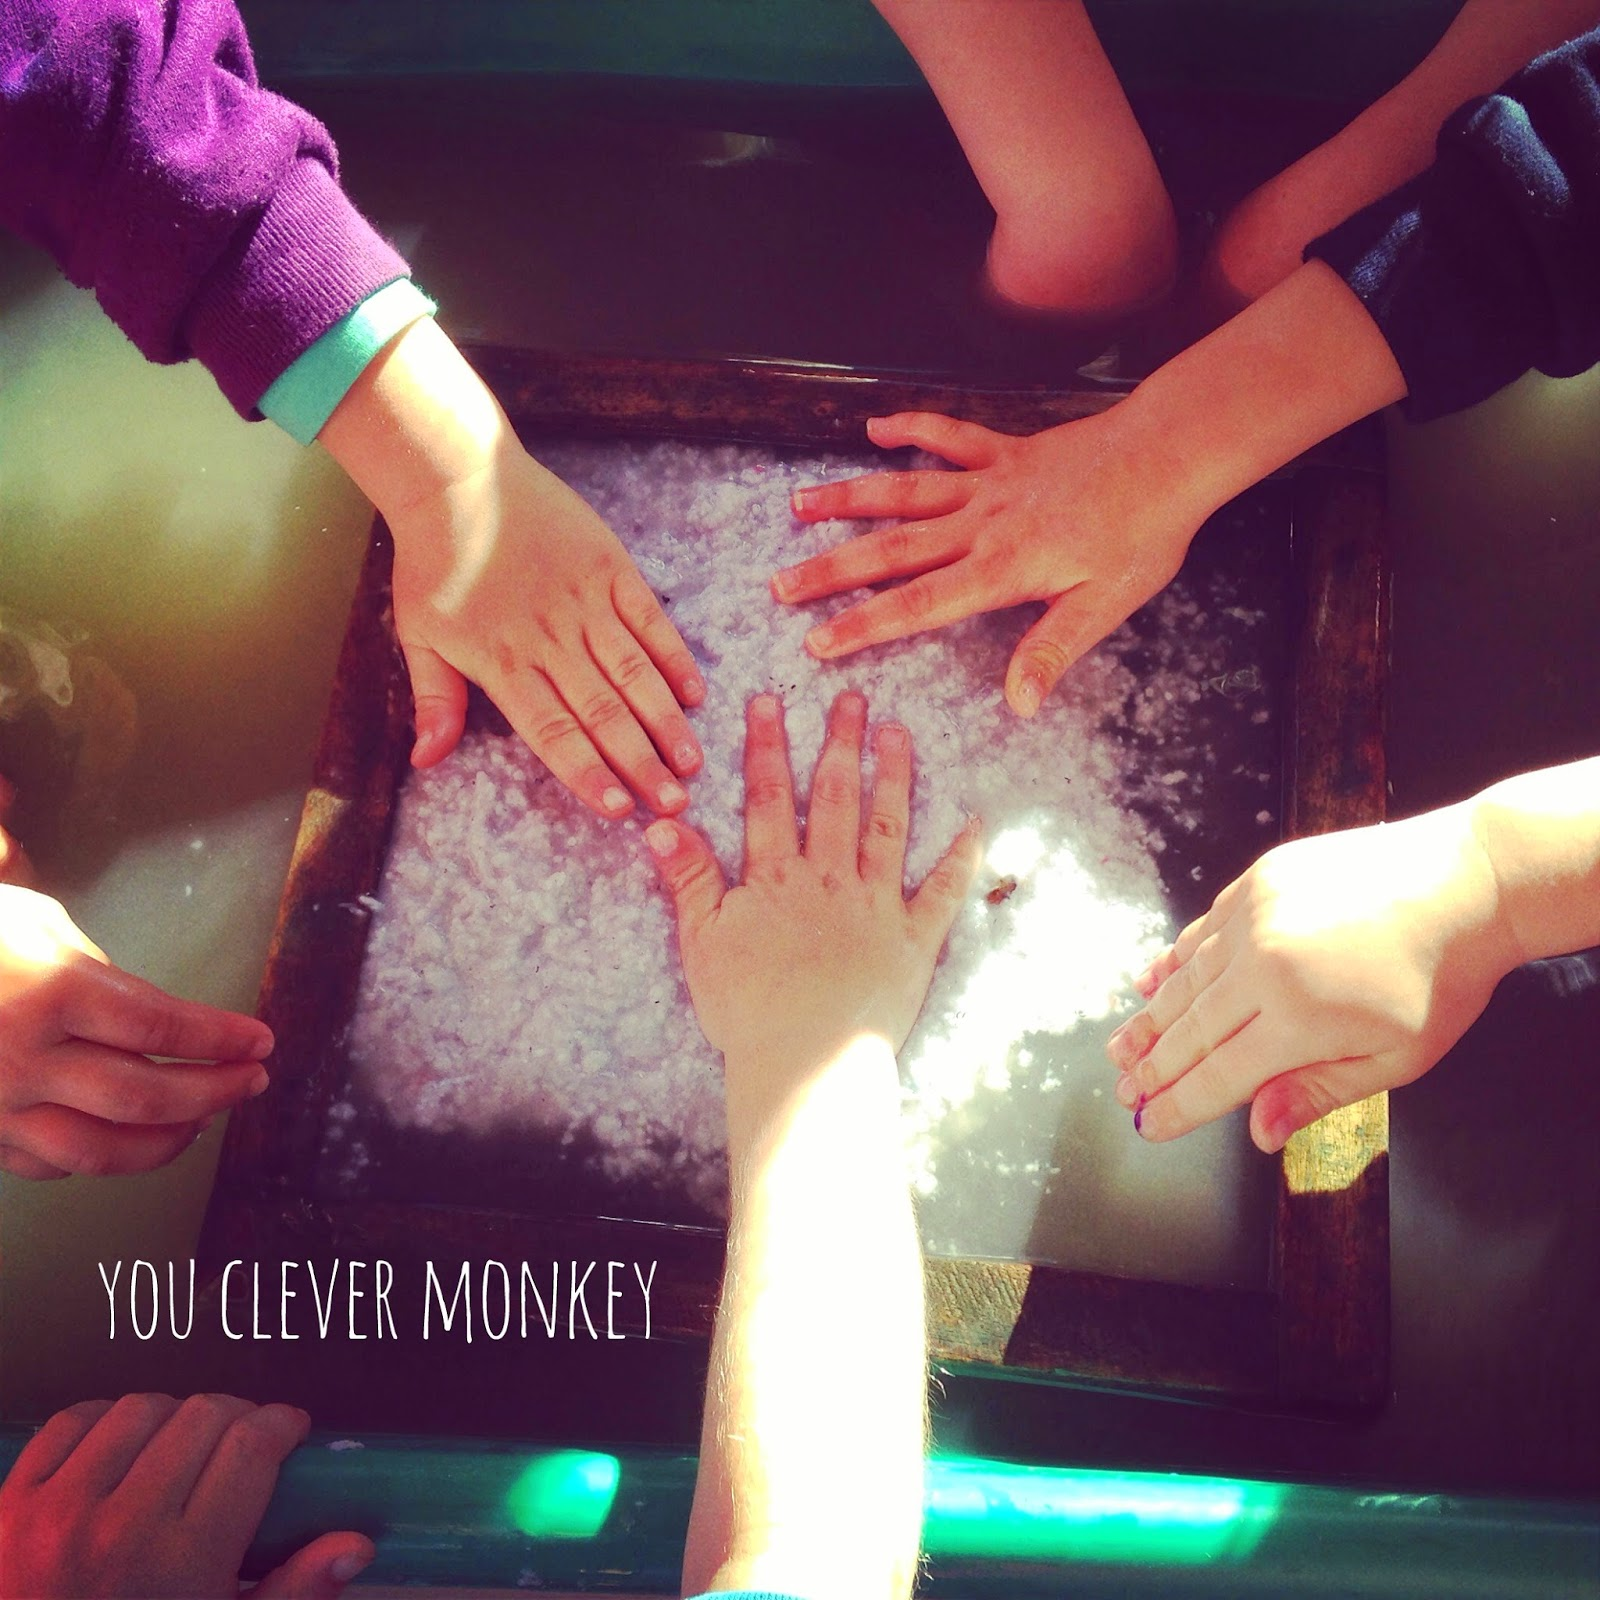 One of the top ten most viewed posts from 2014 on www.youclevermonkey.com